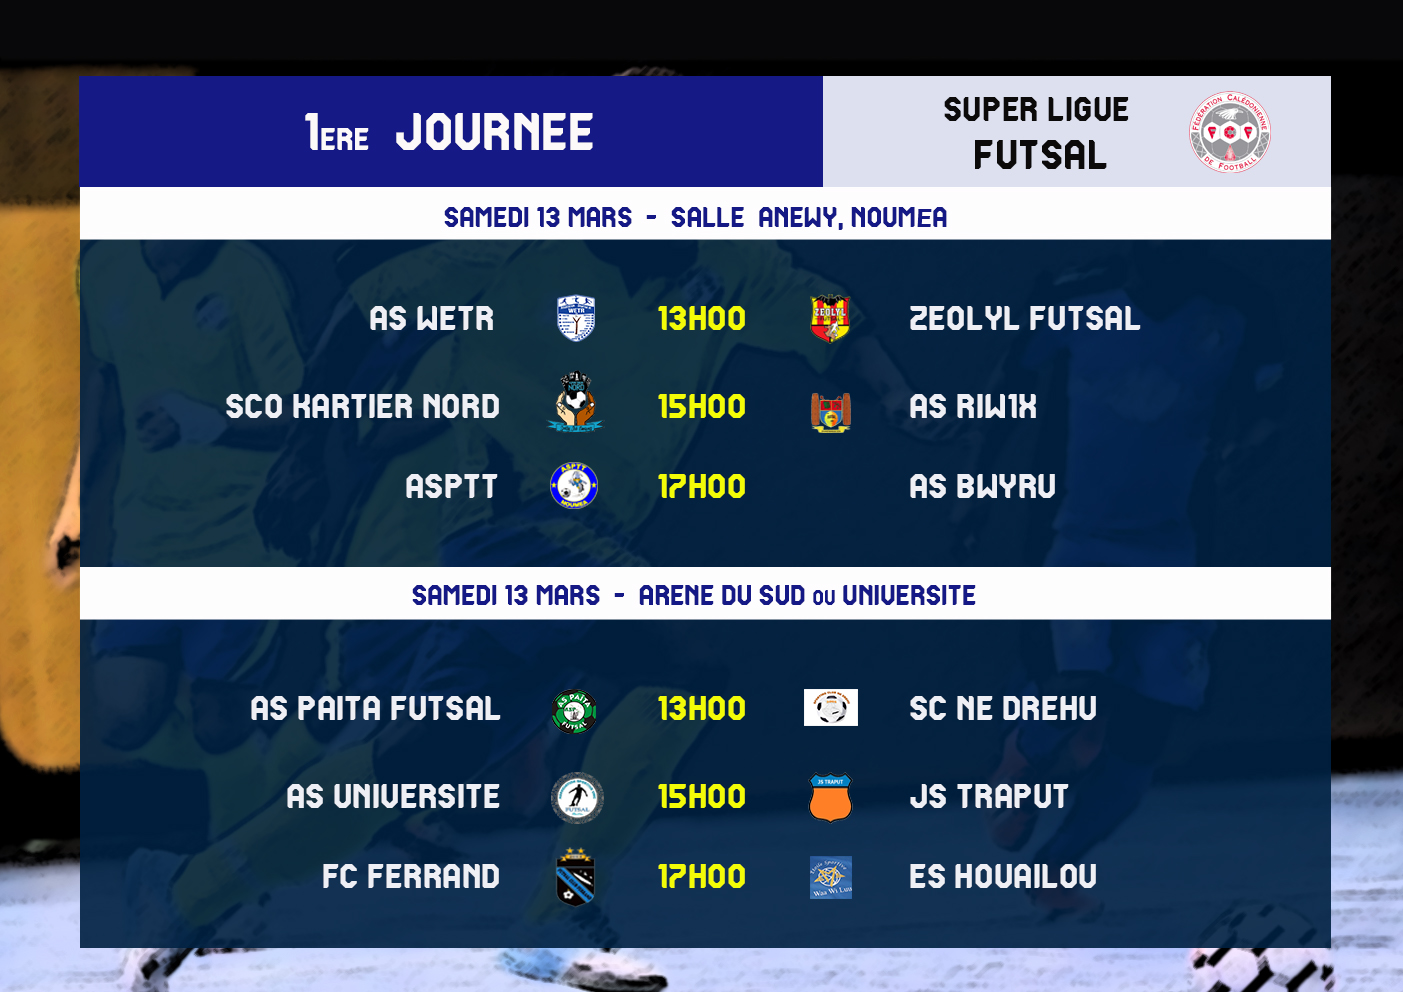 La SUPER LIGUE FUTSAL connait son calendrier 2021 / FCF